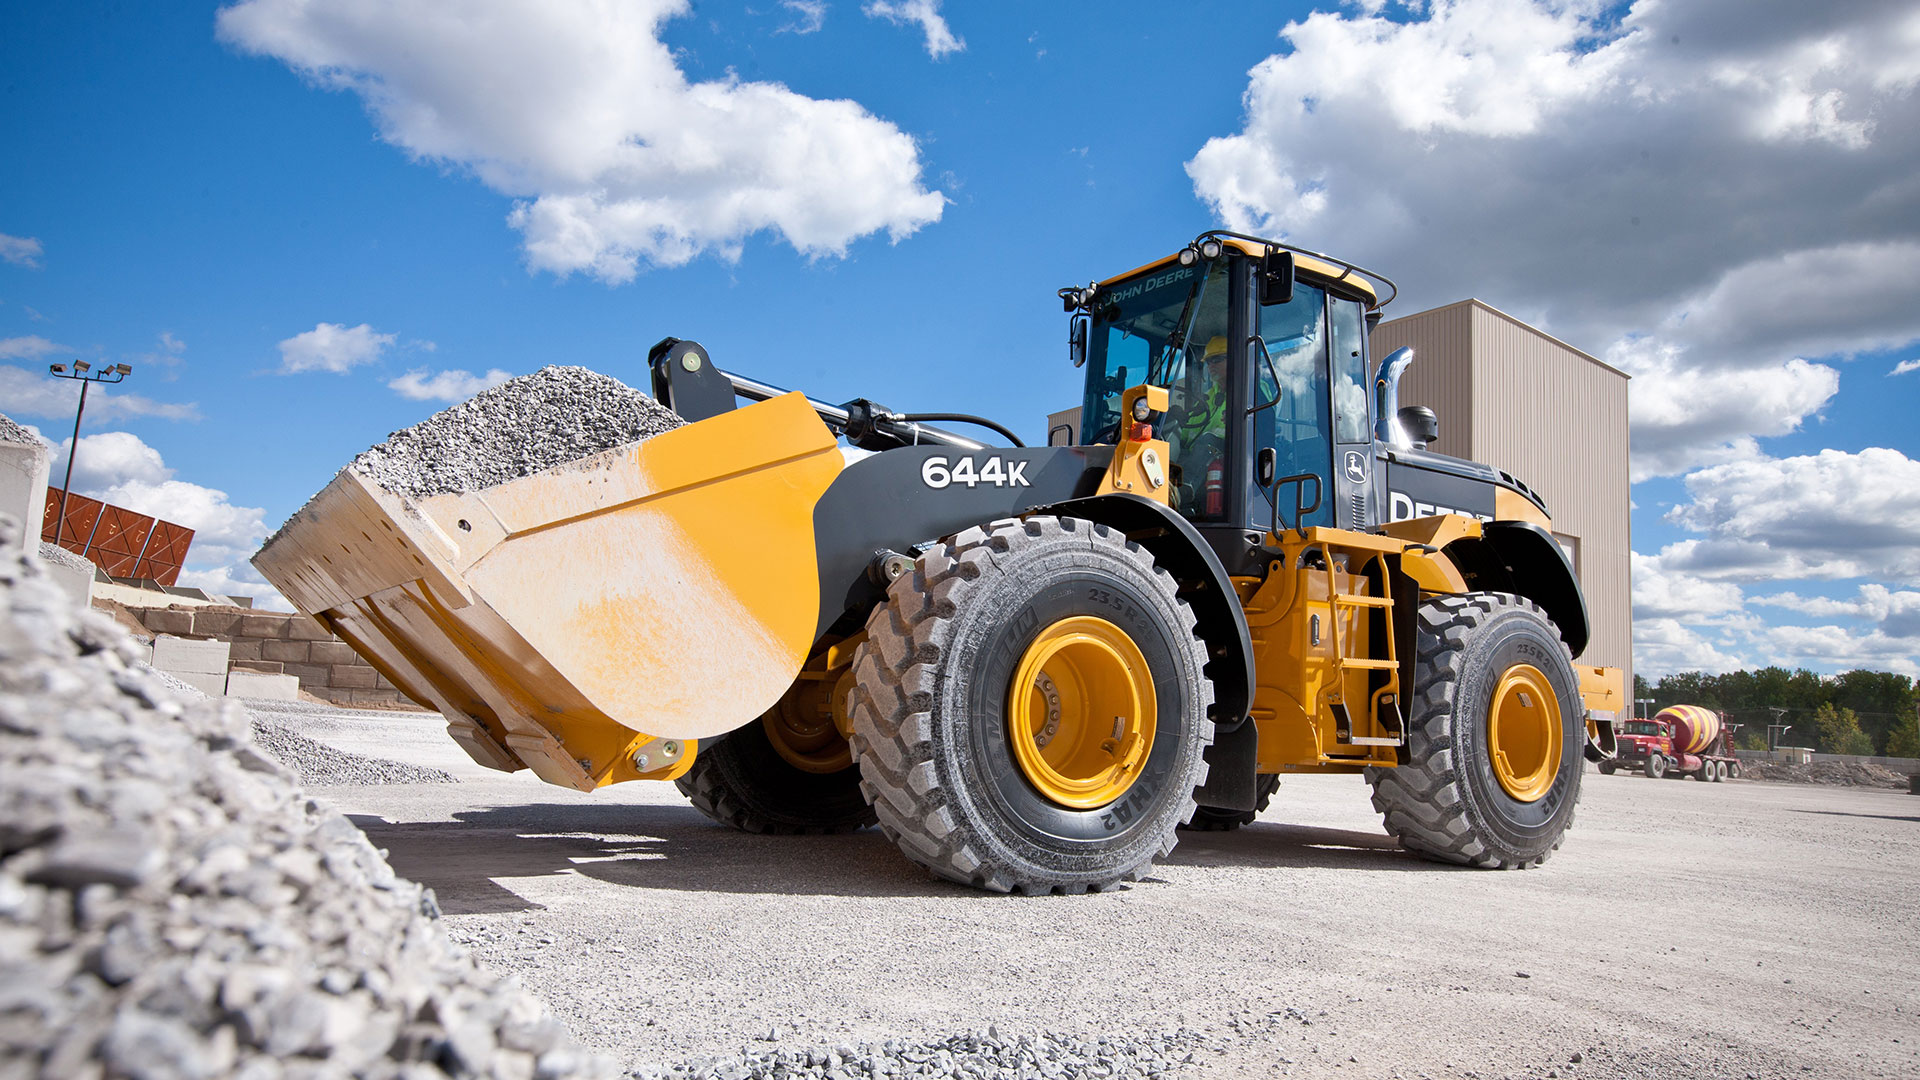 John Deere Construction Equipment Videos: See the Machines ...